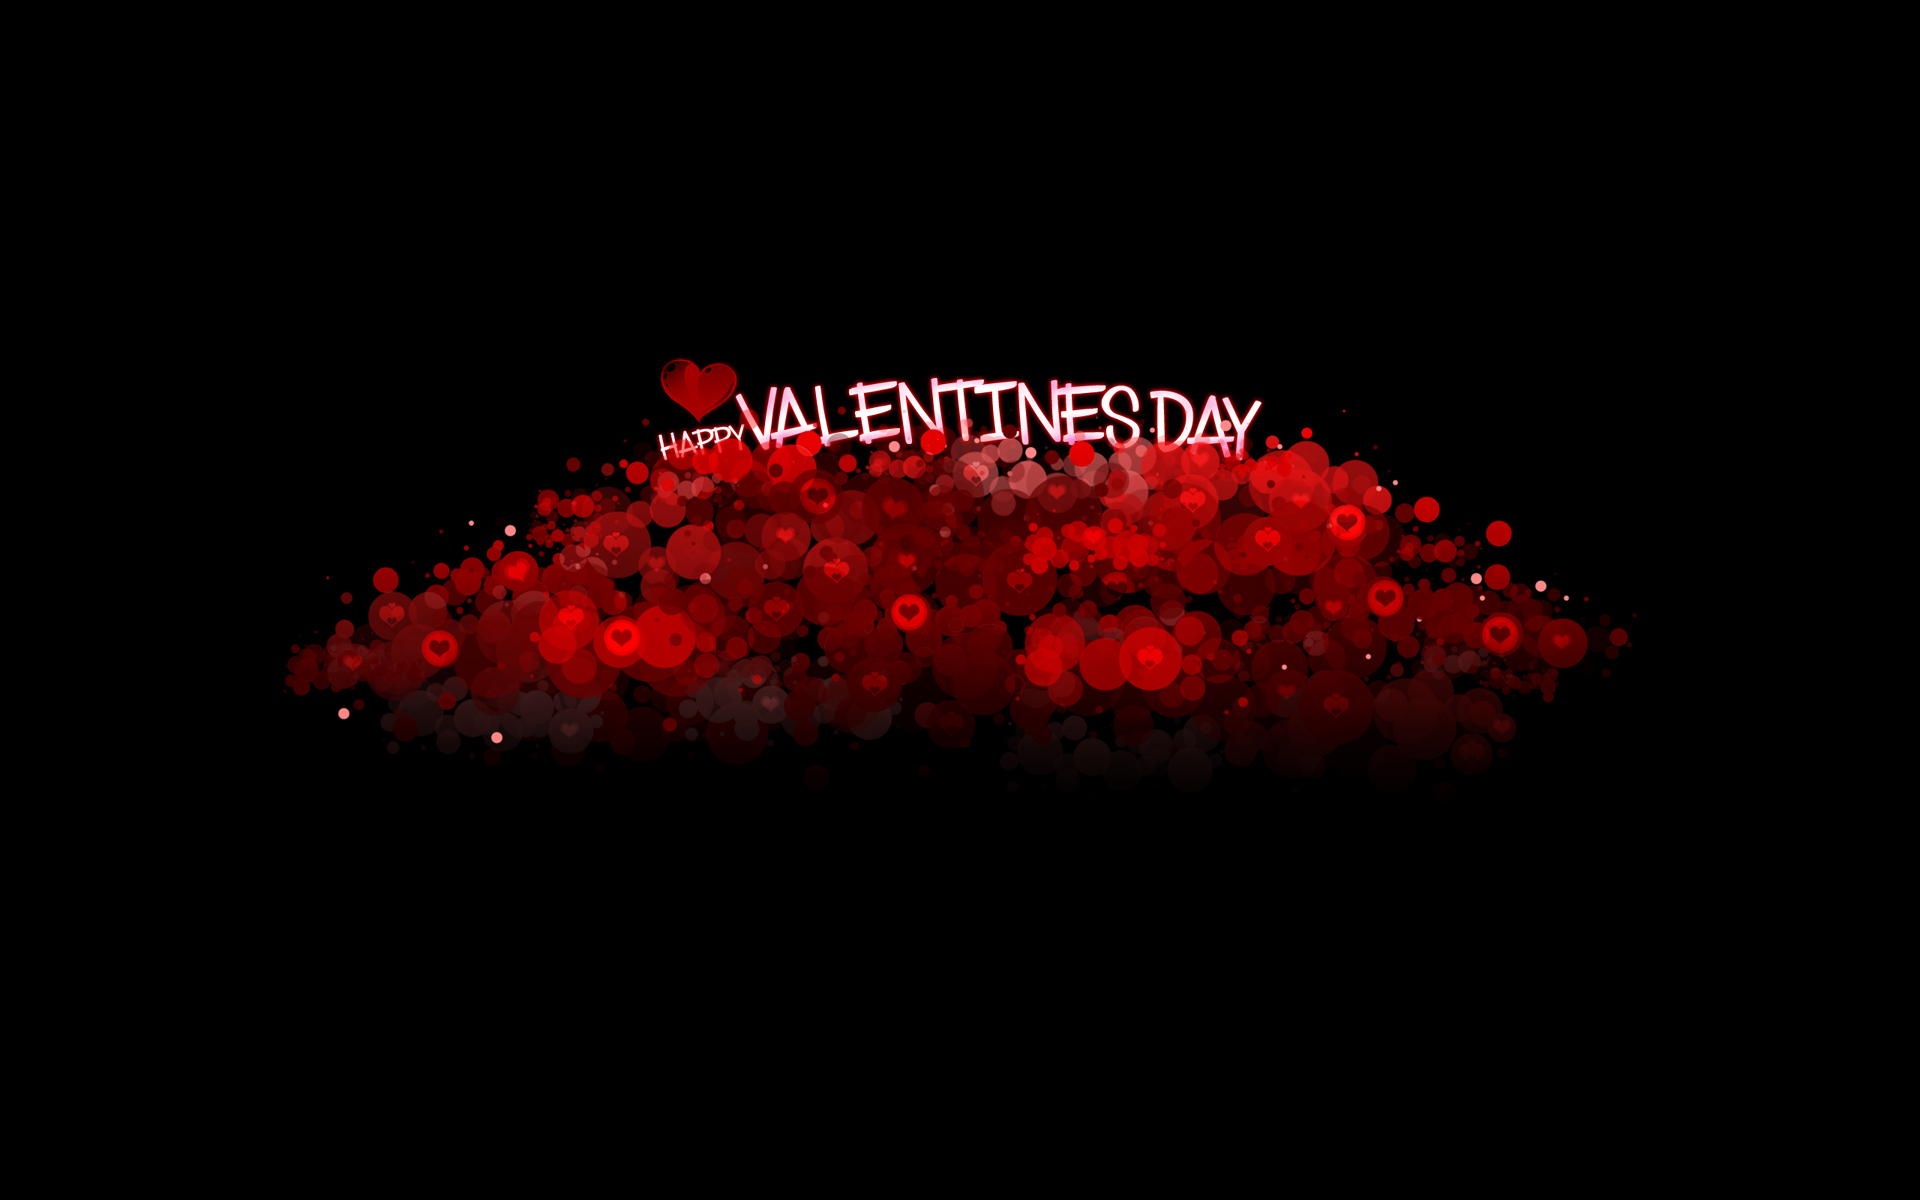 2015 Valentines Day wallpapers HD Images